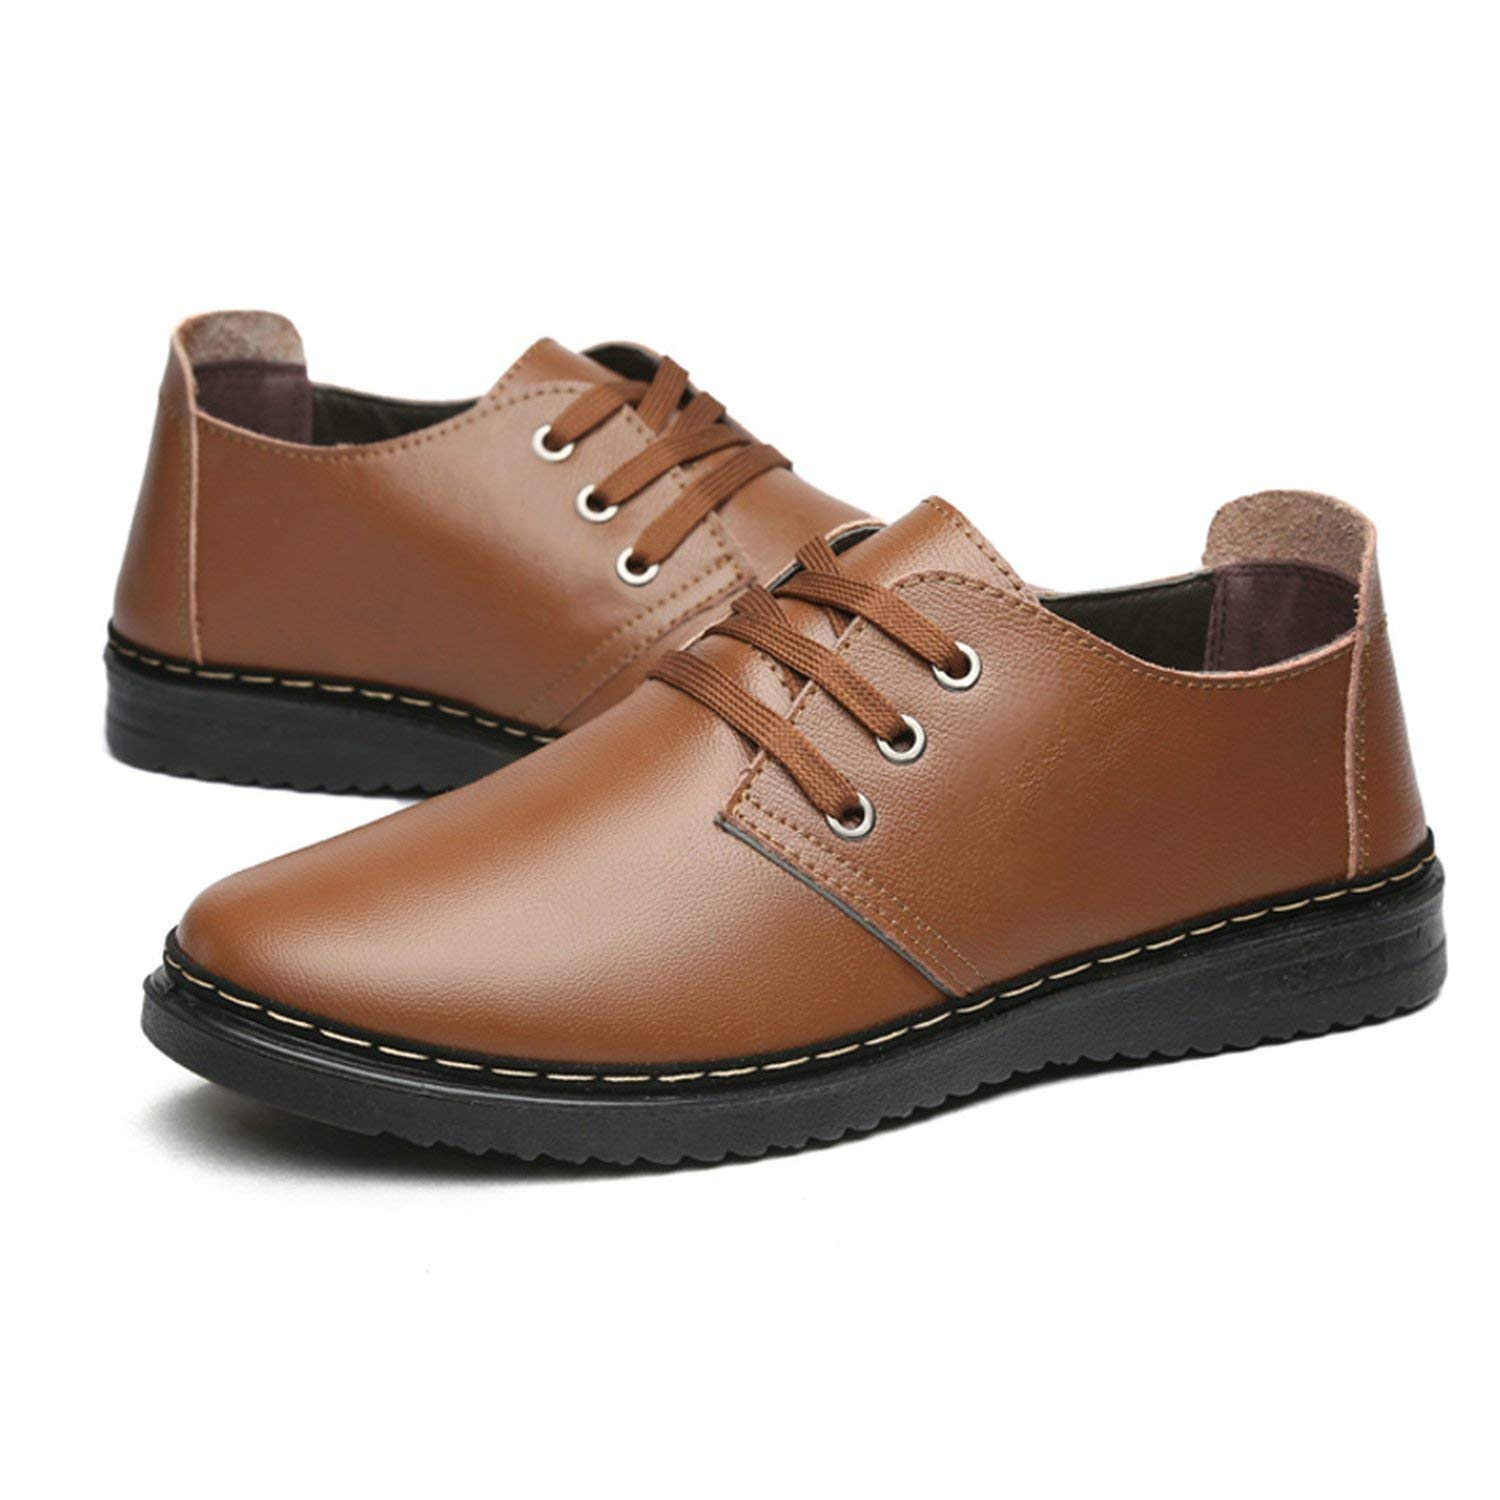 5f5be2bf71c7 Buy Memoriesed Autumn New Casual Shoes Mens Leather Flats Lace-up ...